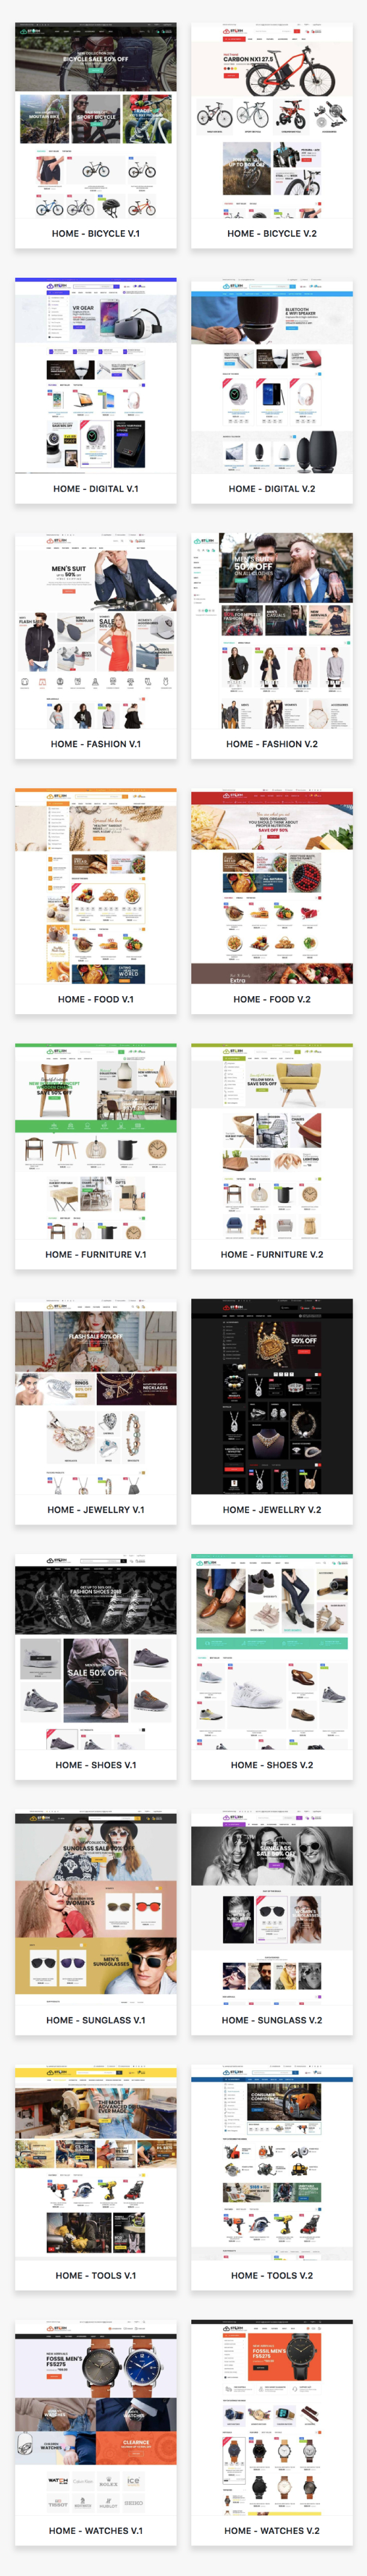 Storm - Ecommerce HTML Template - 4